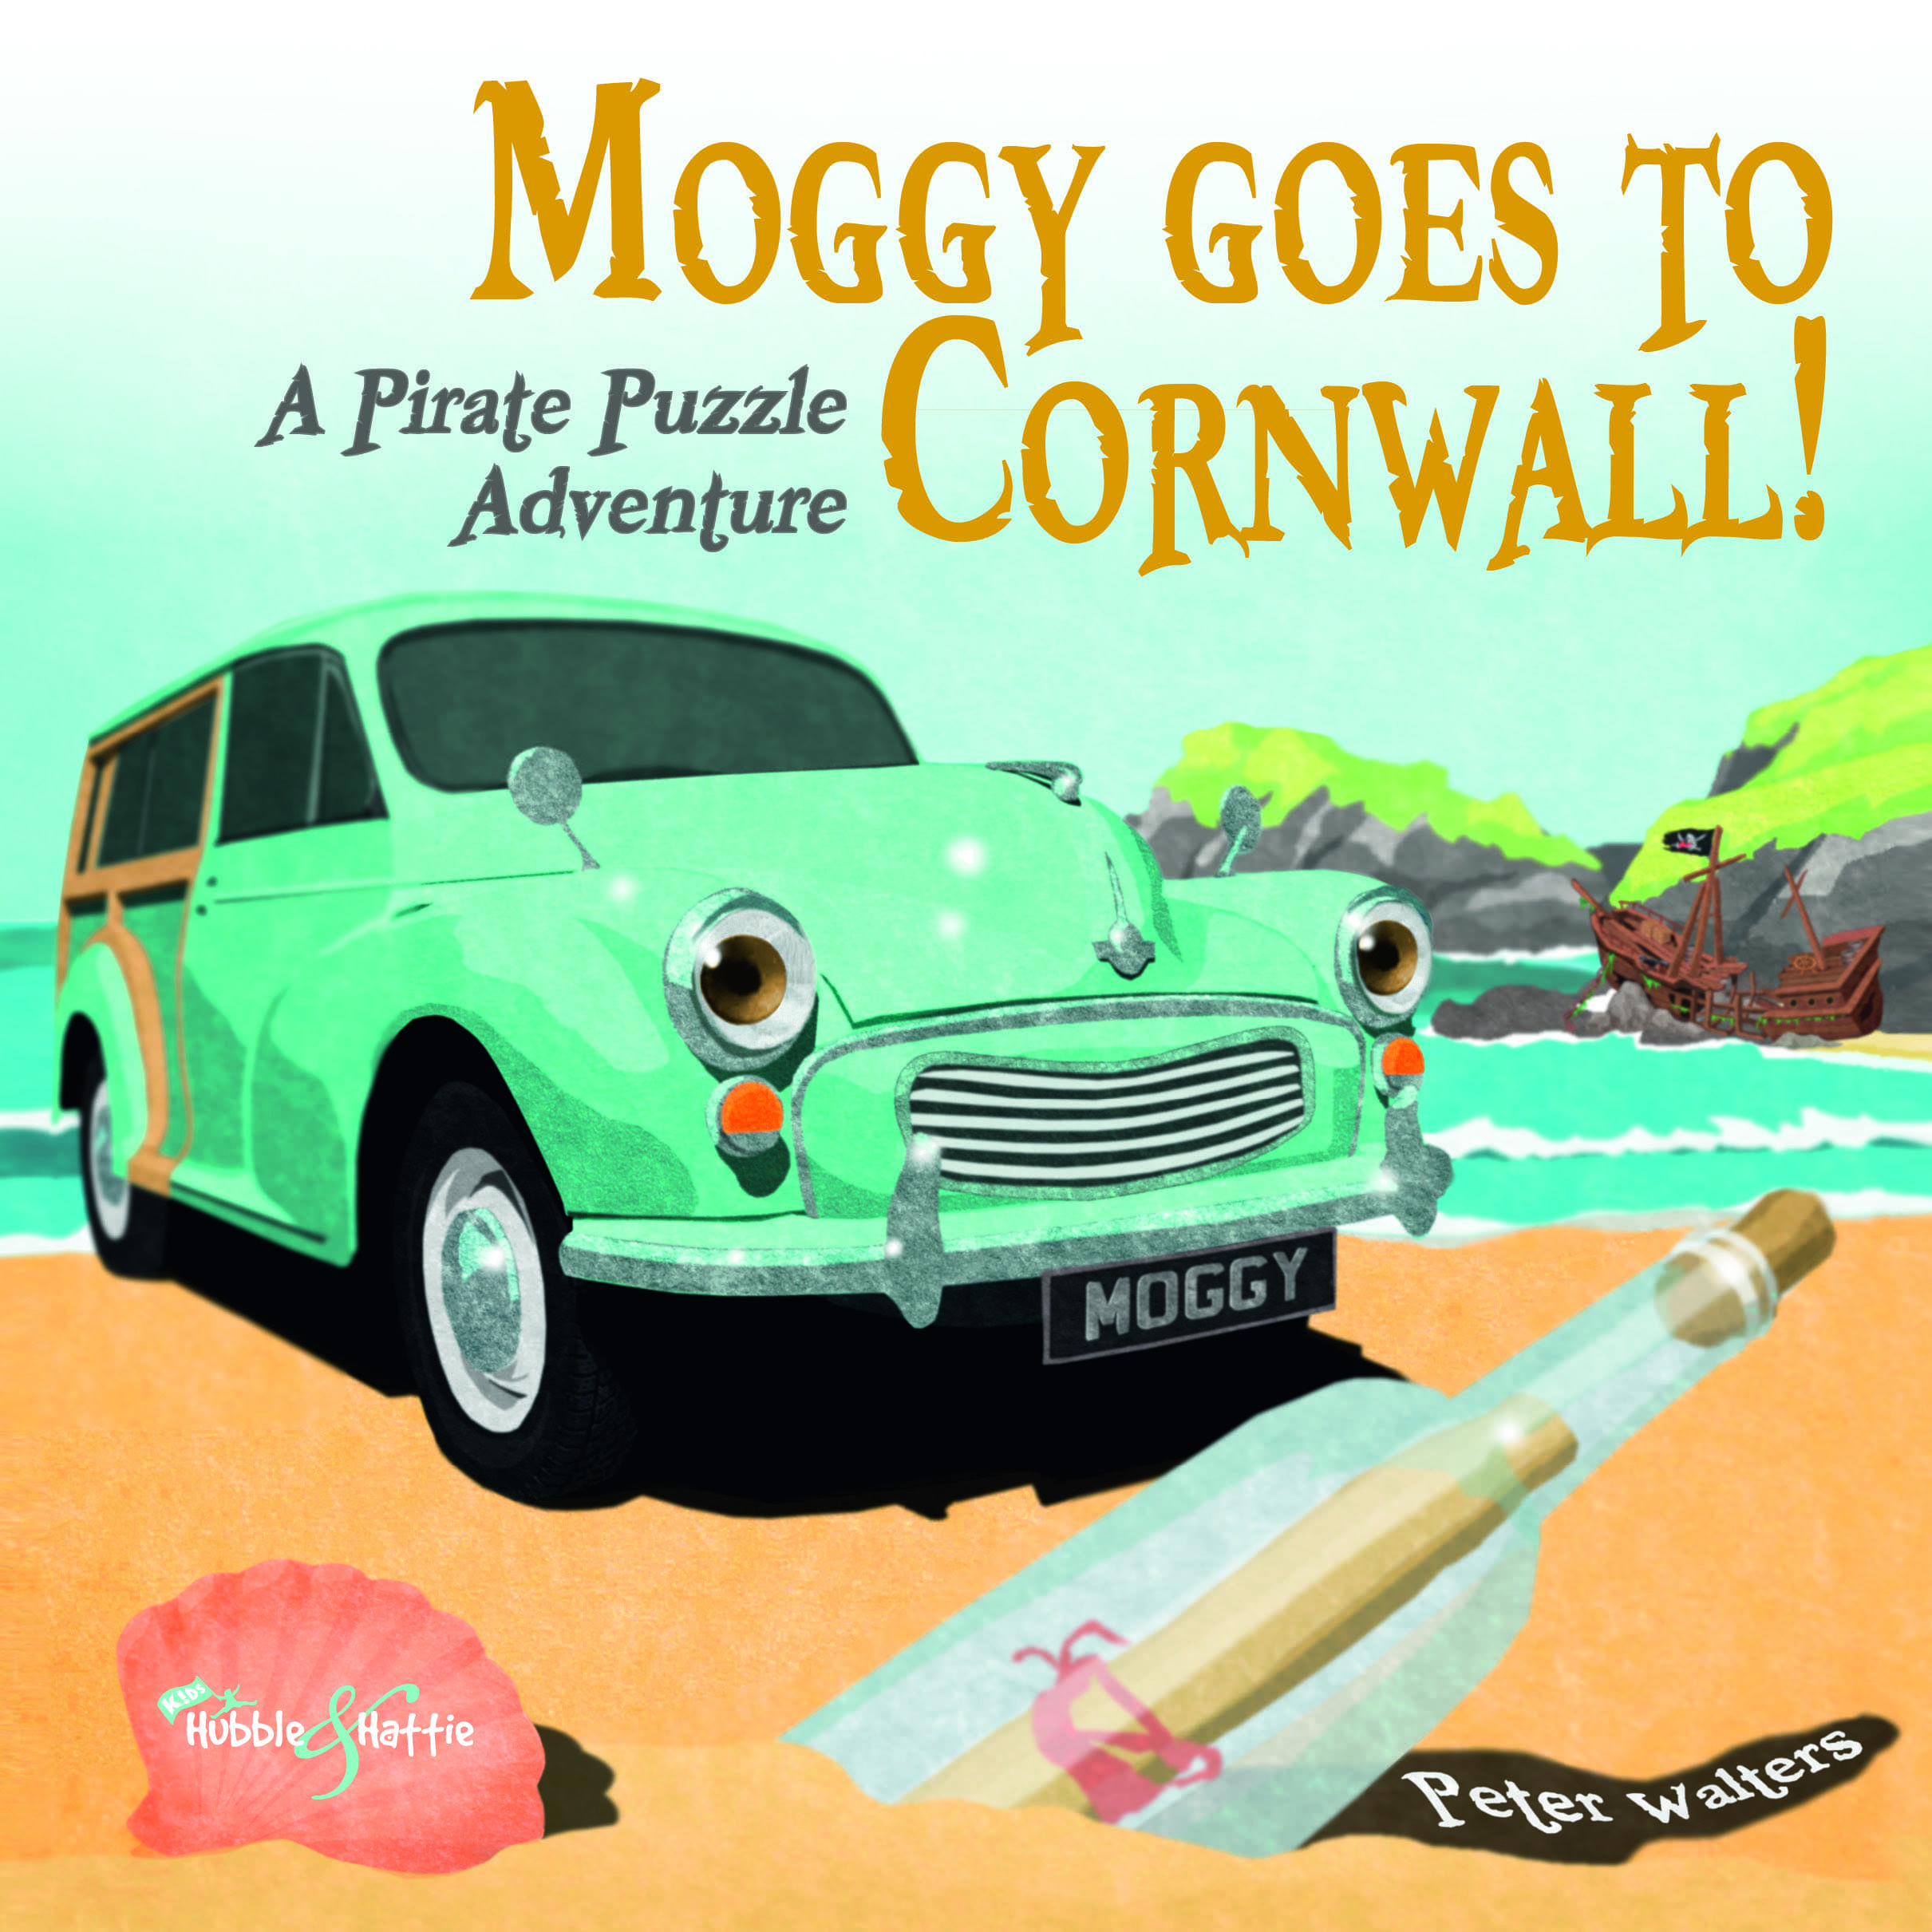 Moggy goes to Cornwall – A  Pirate Puzzle Adventure